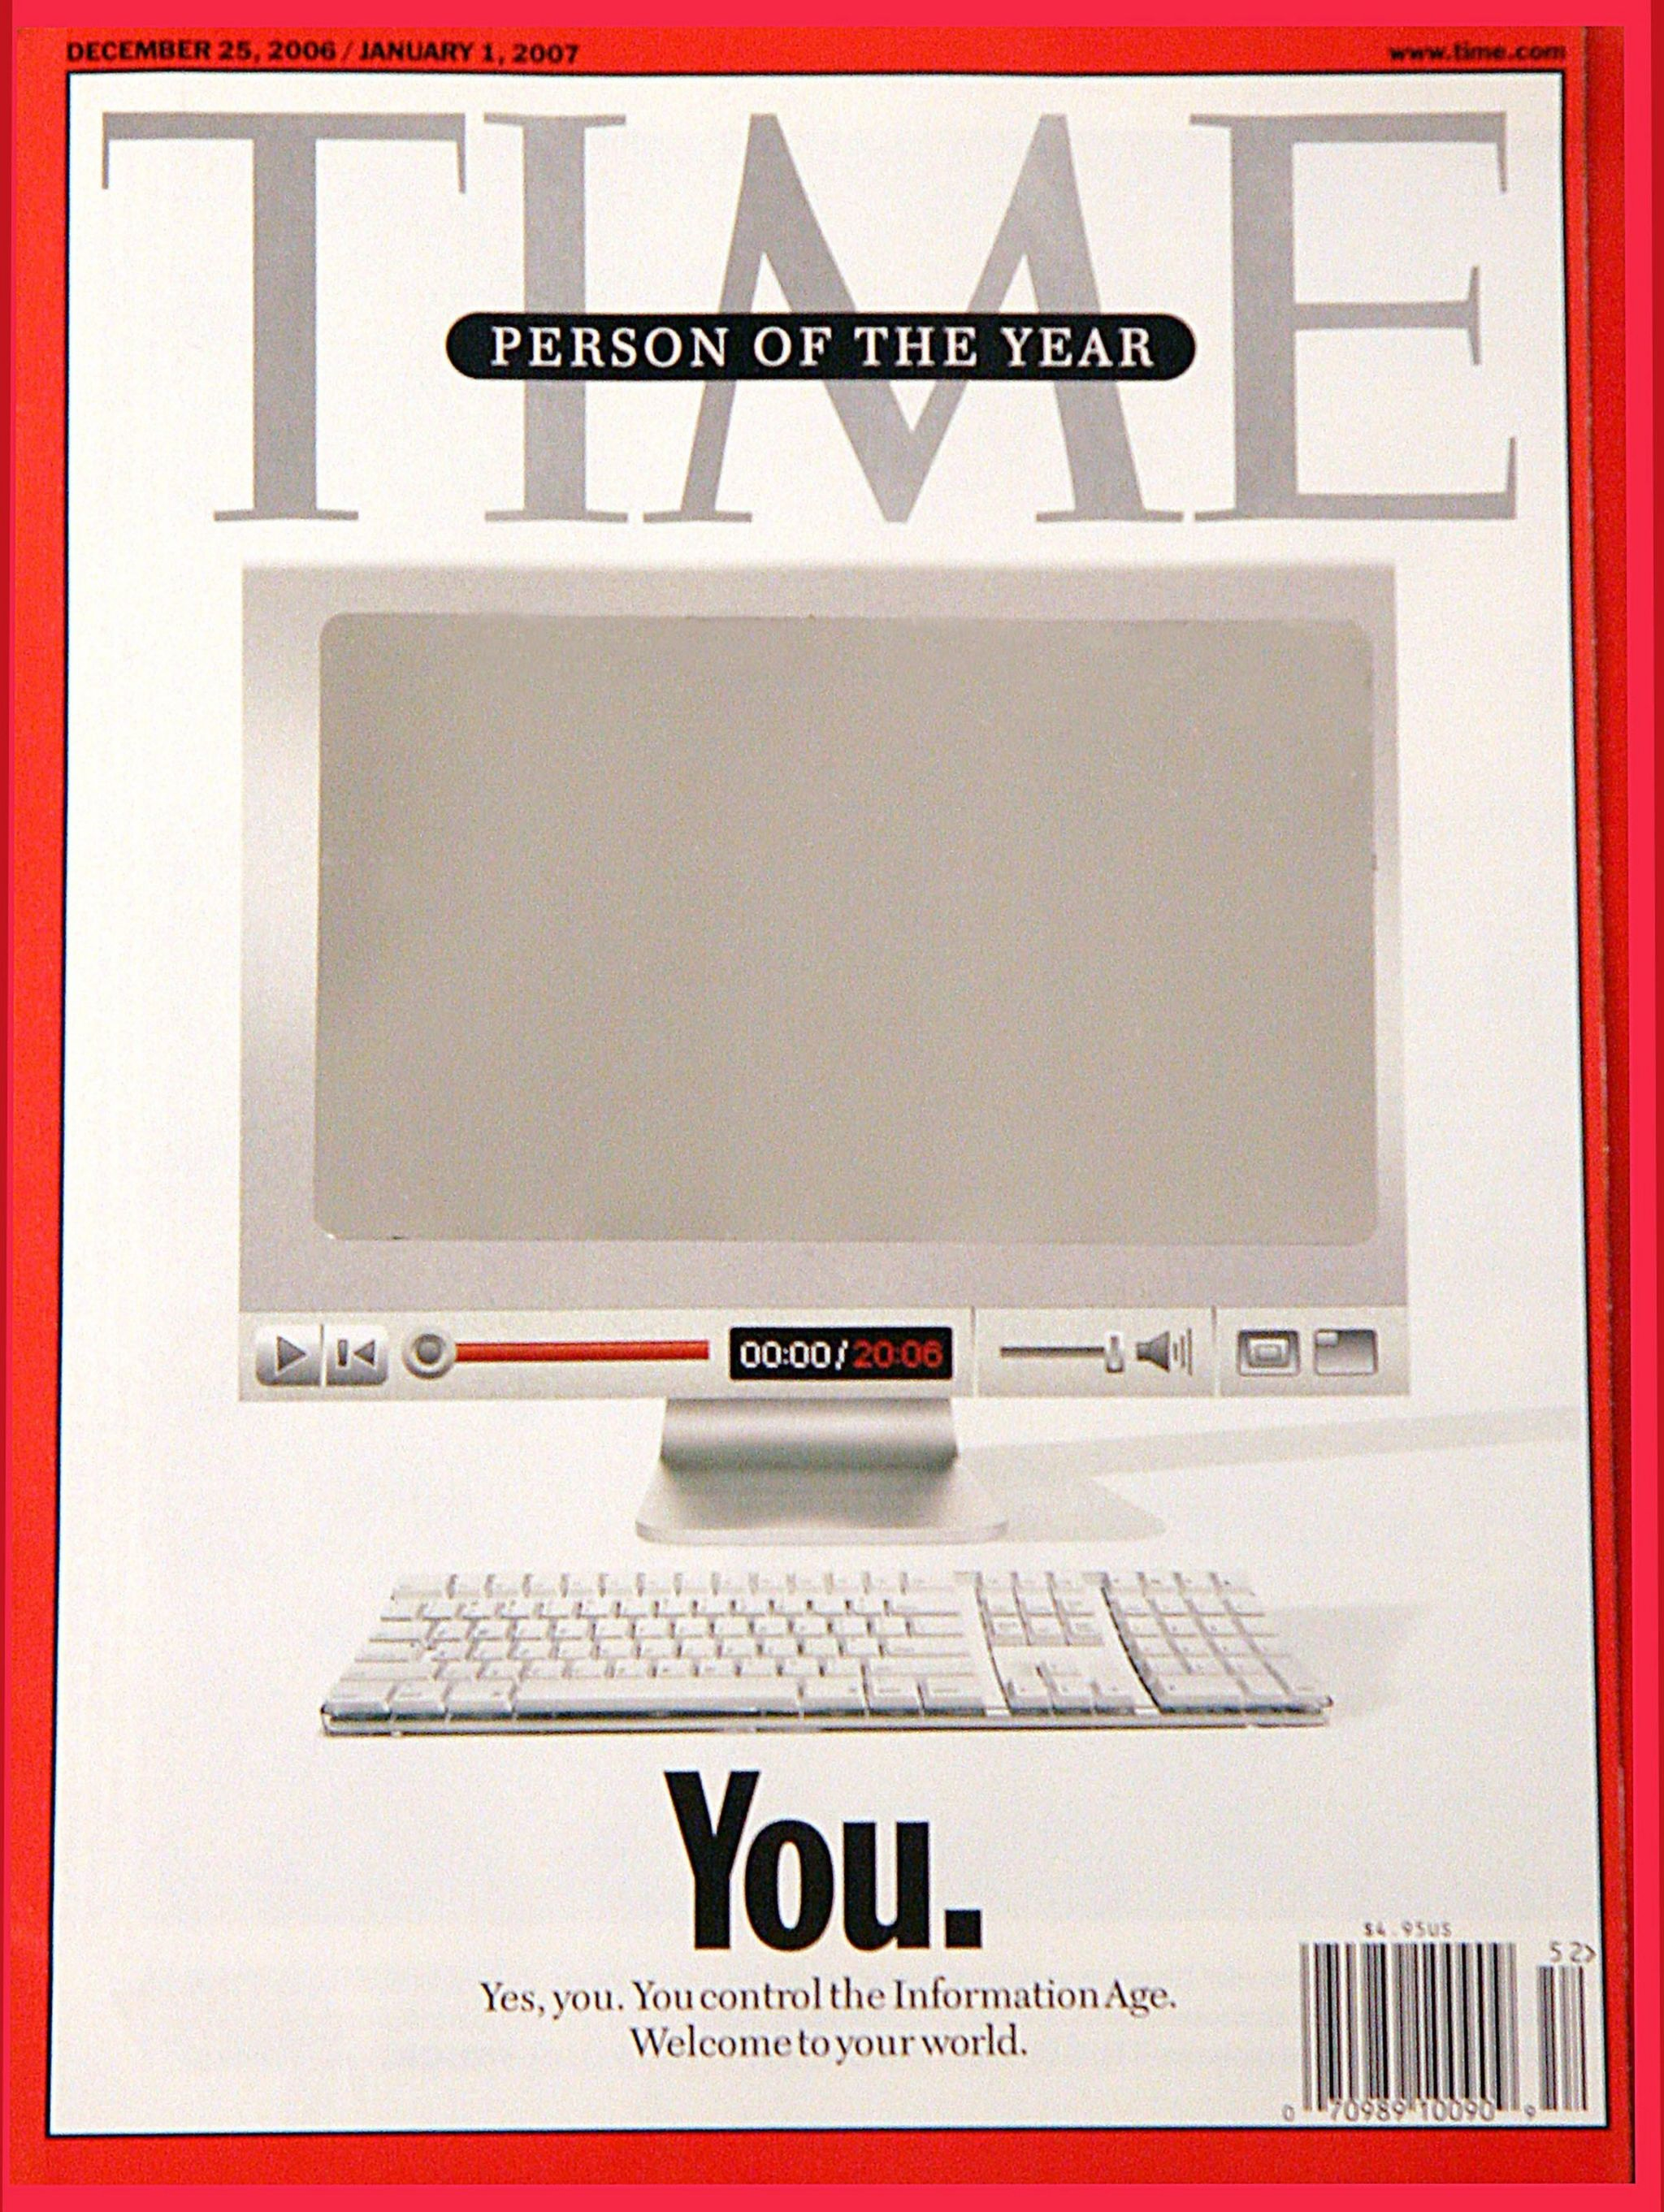 """Time Person of the Year cover in 2006 - """"You"""", reflecting the importance of user-generated internet content"""